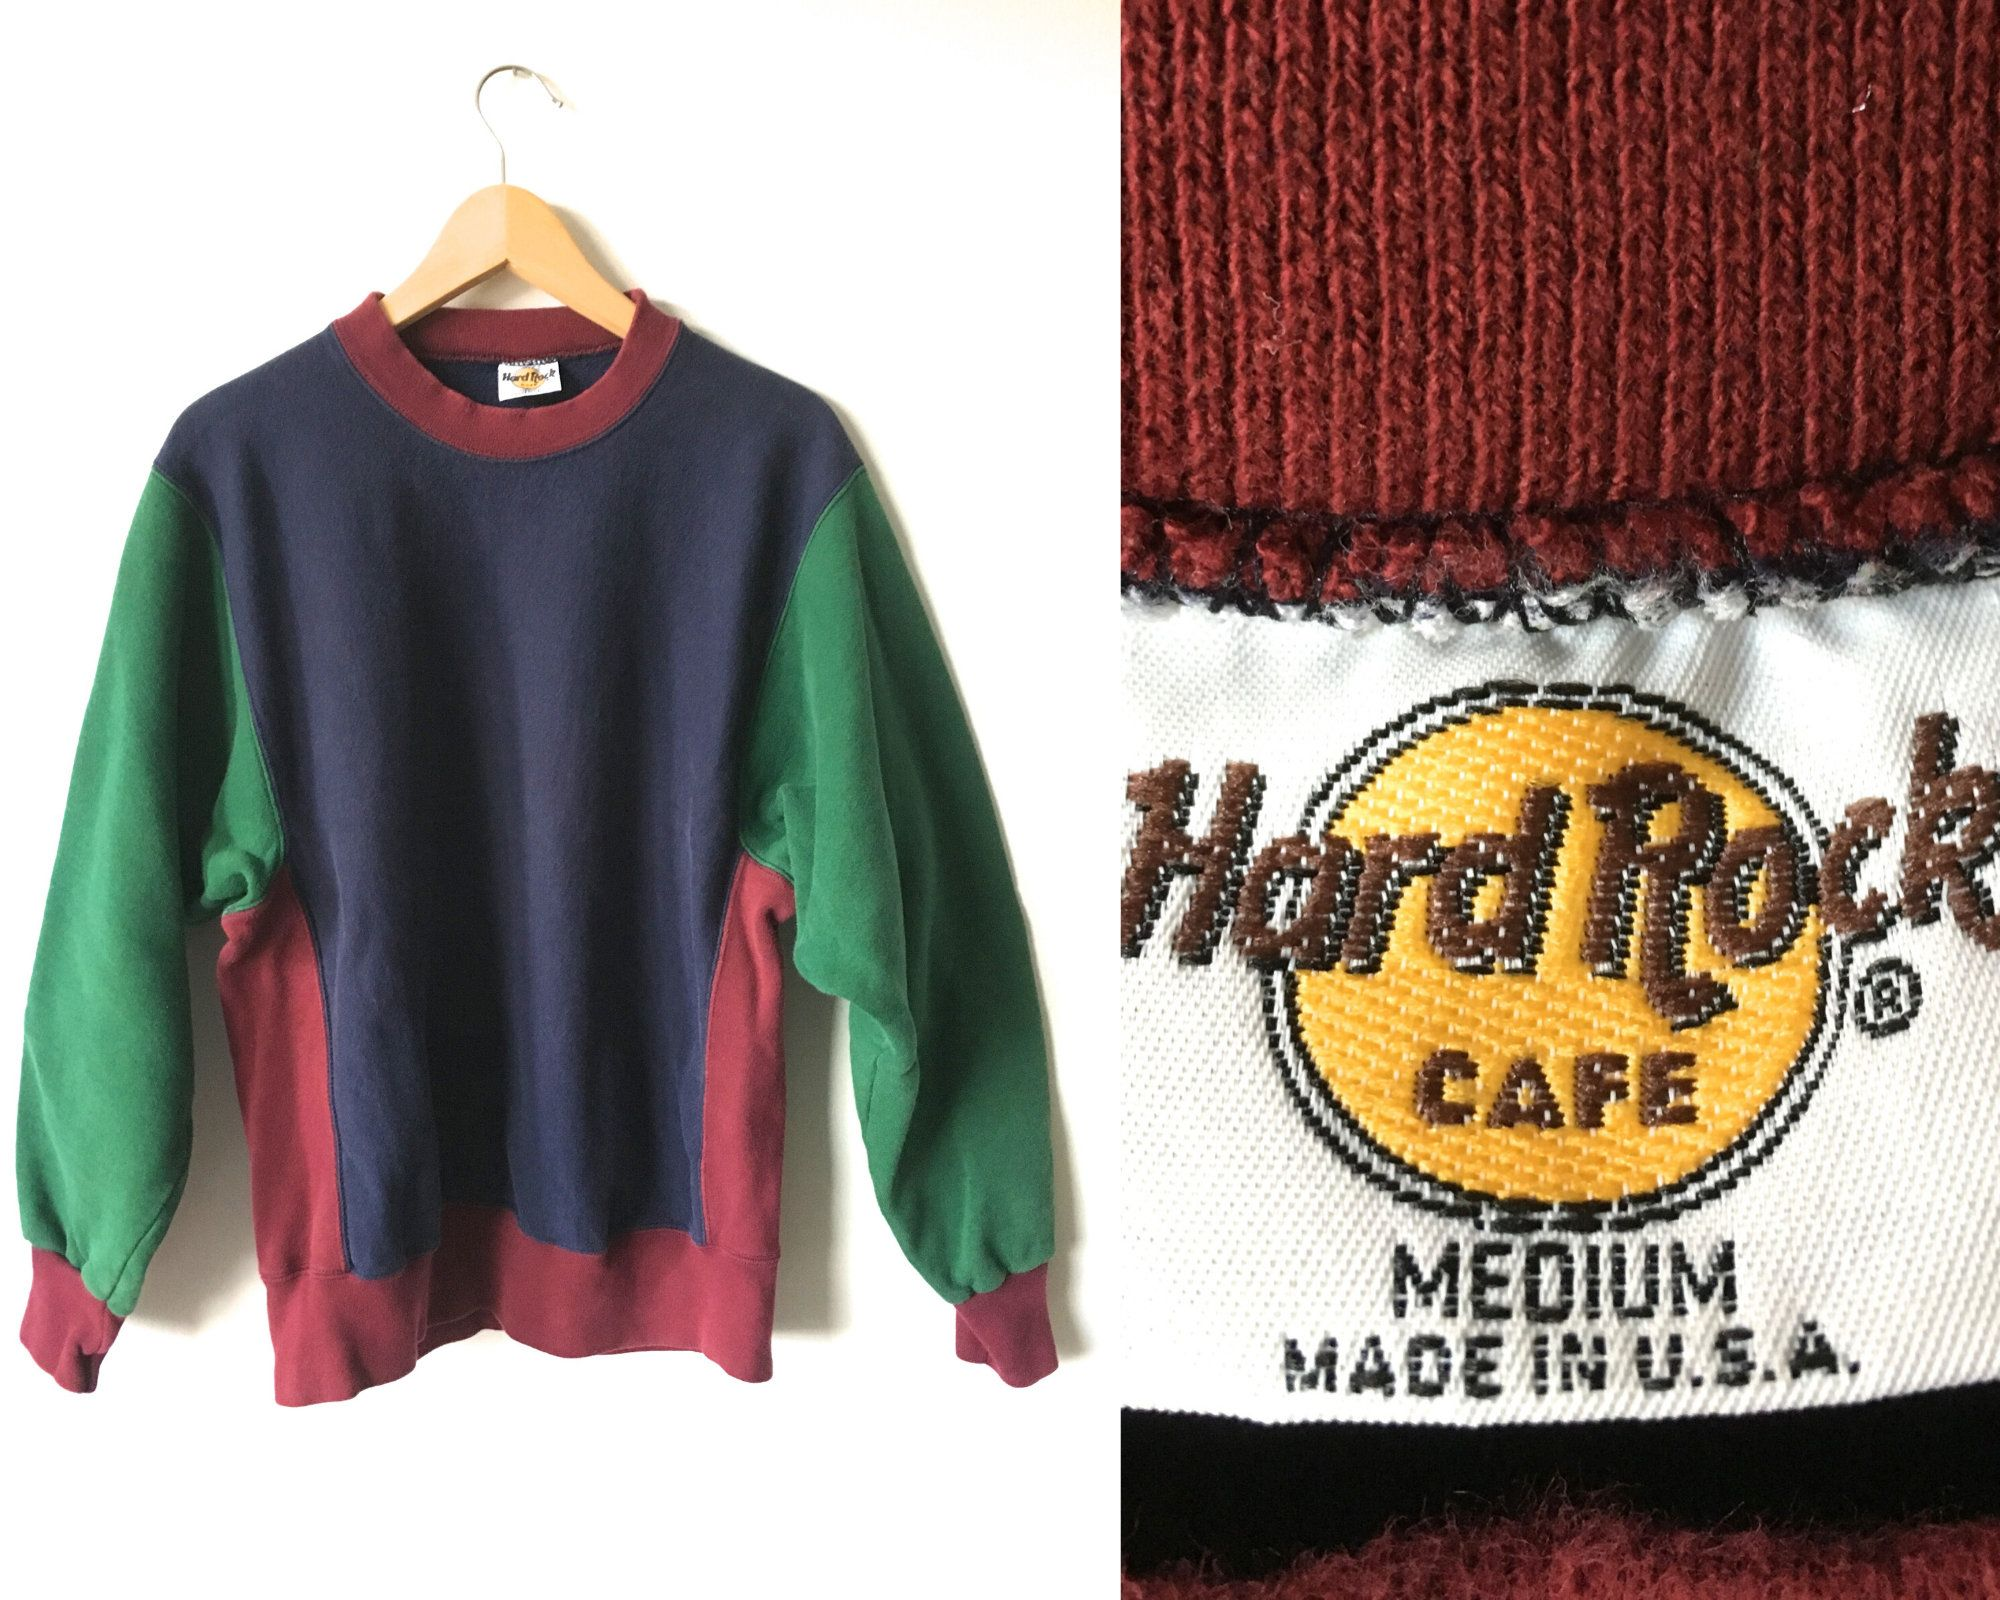 The 90s Color Block Sweatshirt Hard Rock Cafe Usa Made 95 Cotton Navy Blue Maroon Red Hunter Green Crew Nec Color Block Sweatshirt Vegan Sweater Sweatshirts